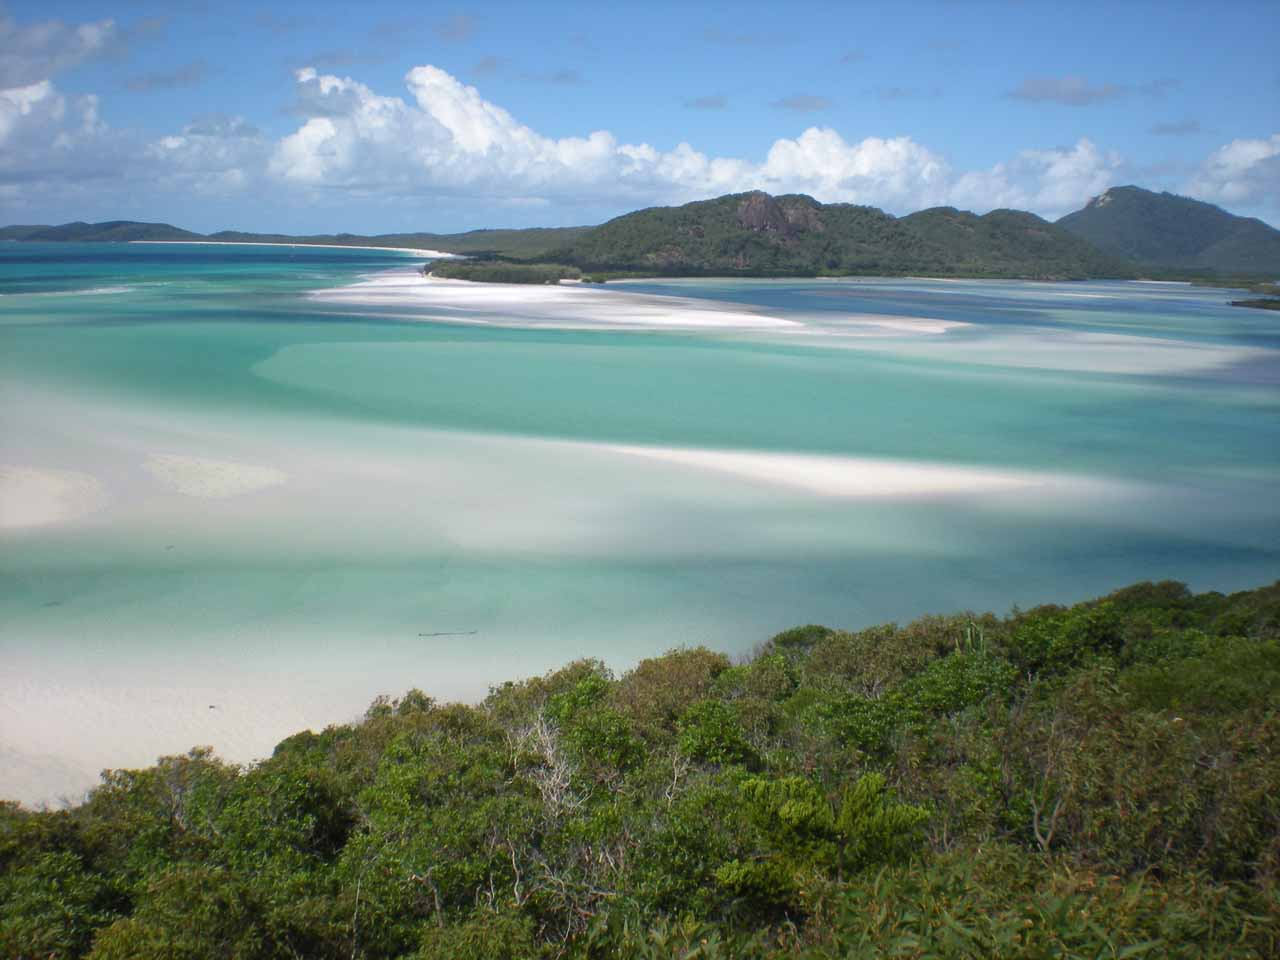 The panorama at Whitsunday Island